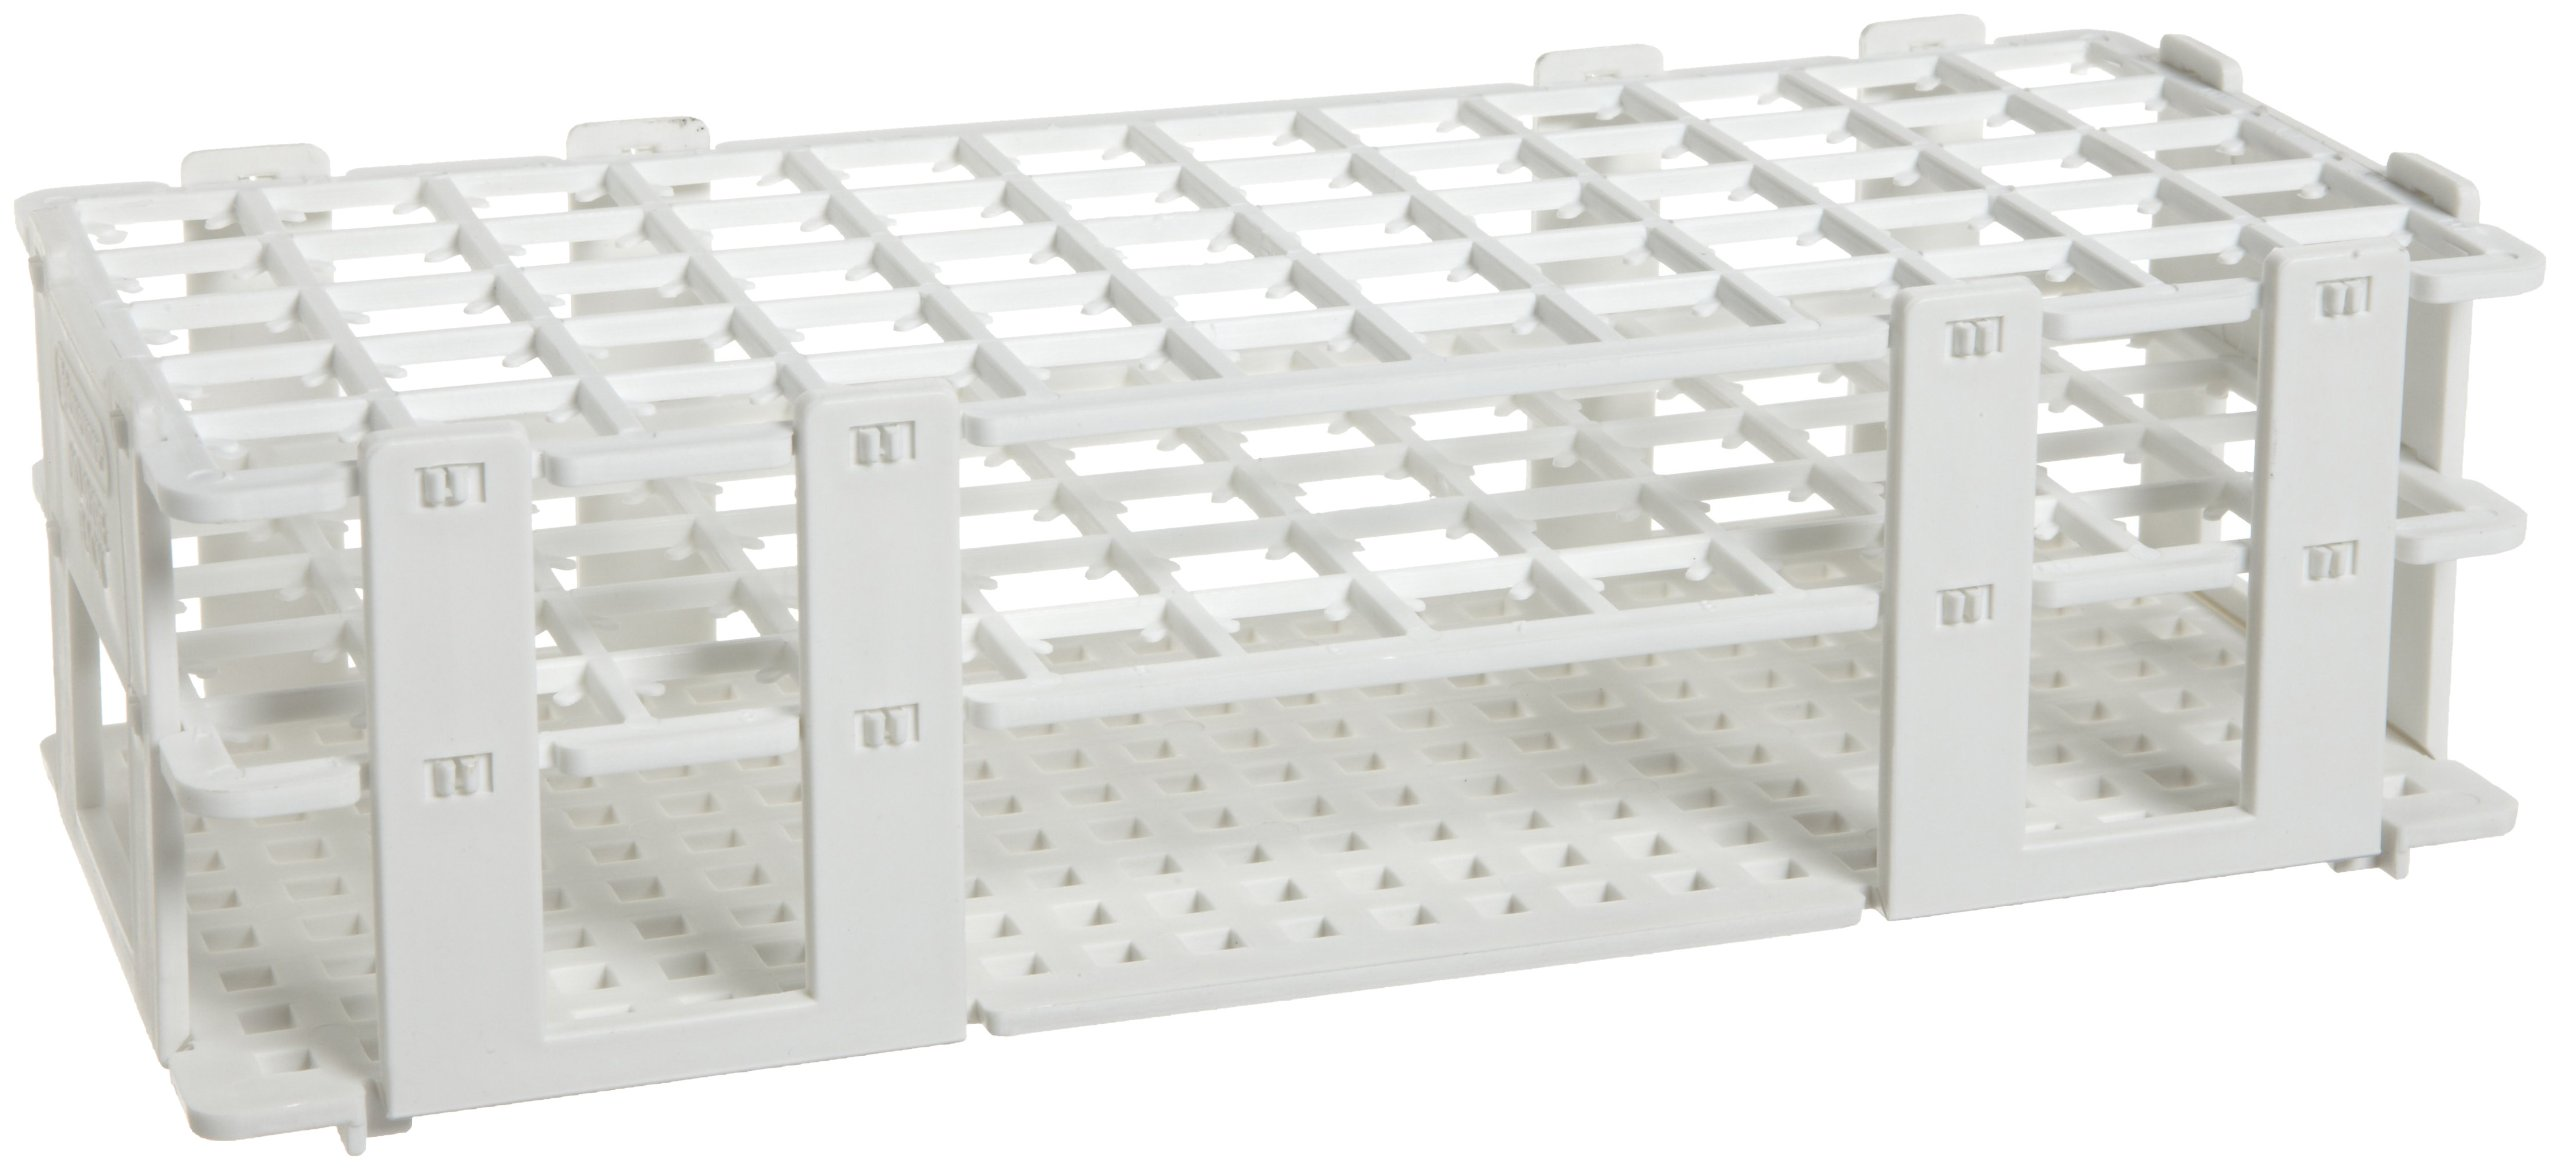 Bel-Art F18749-0001 No-Wire Test Tube Grip Rack; 15-16mm, 60 Places, 9³/₄ x 4¹/₈ x 2³/₄ in., Polypropylene by SP Scienceware